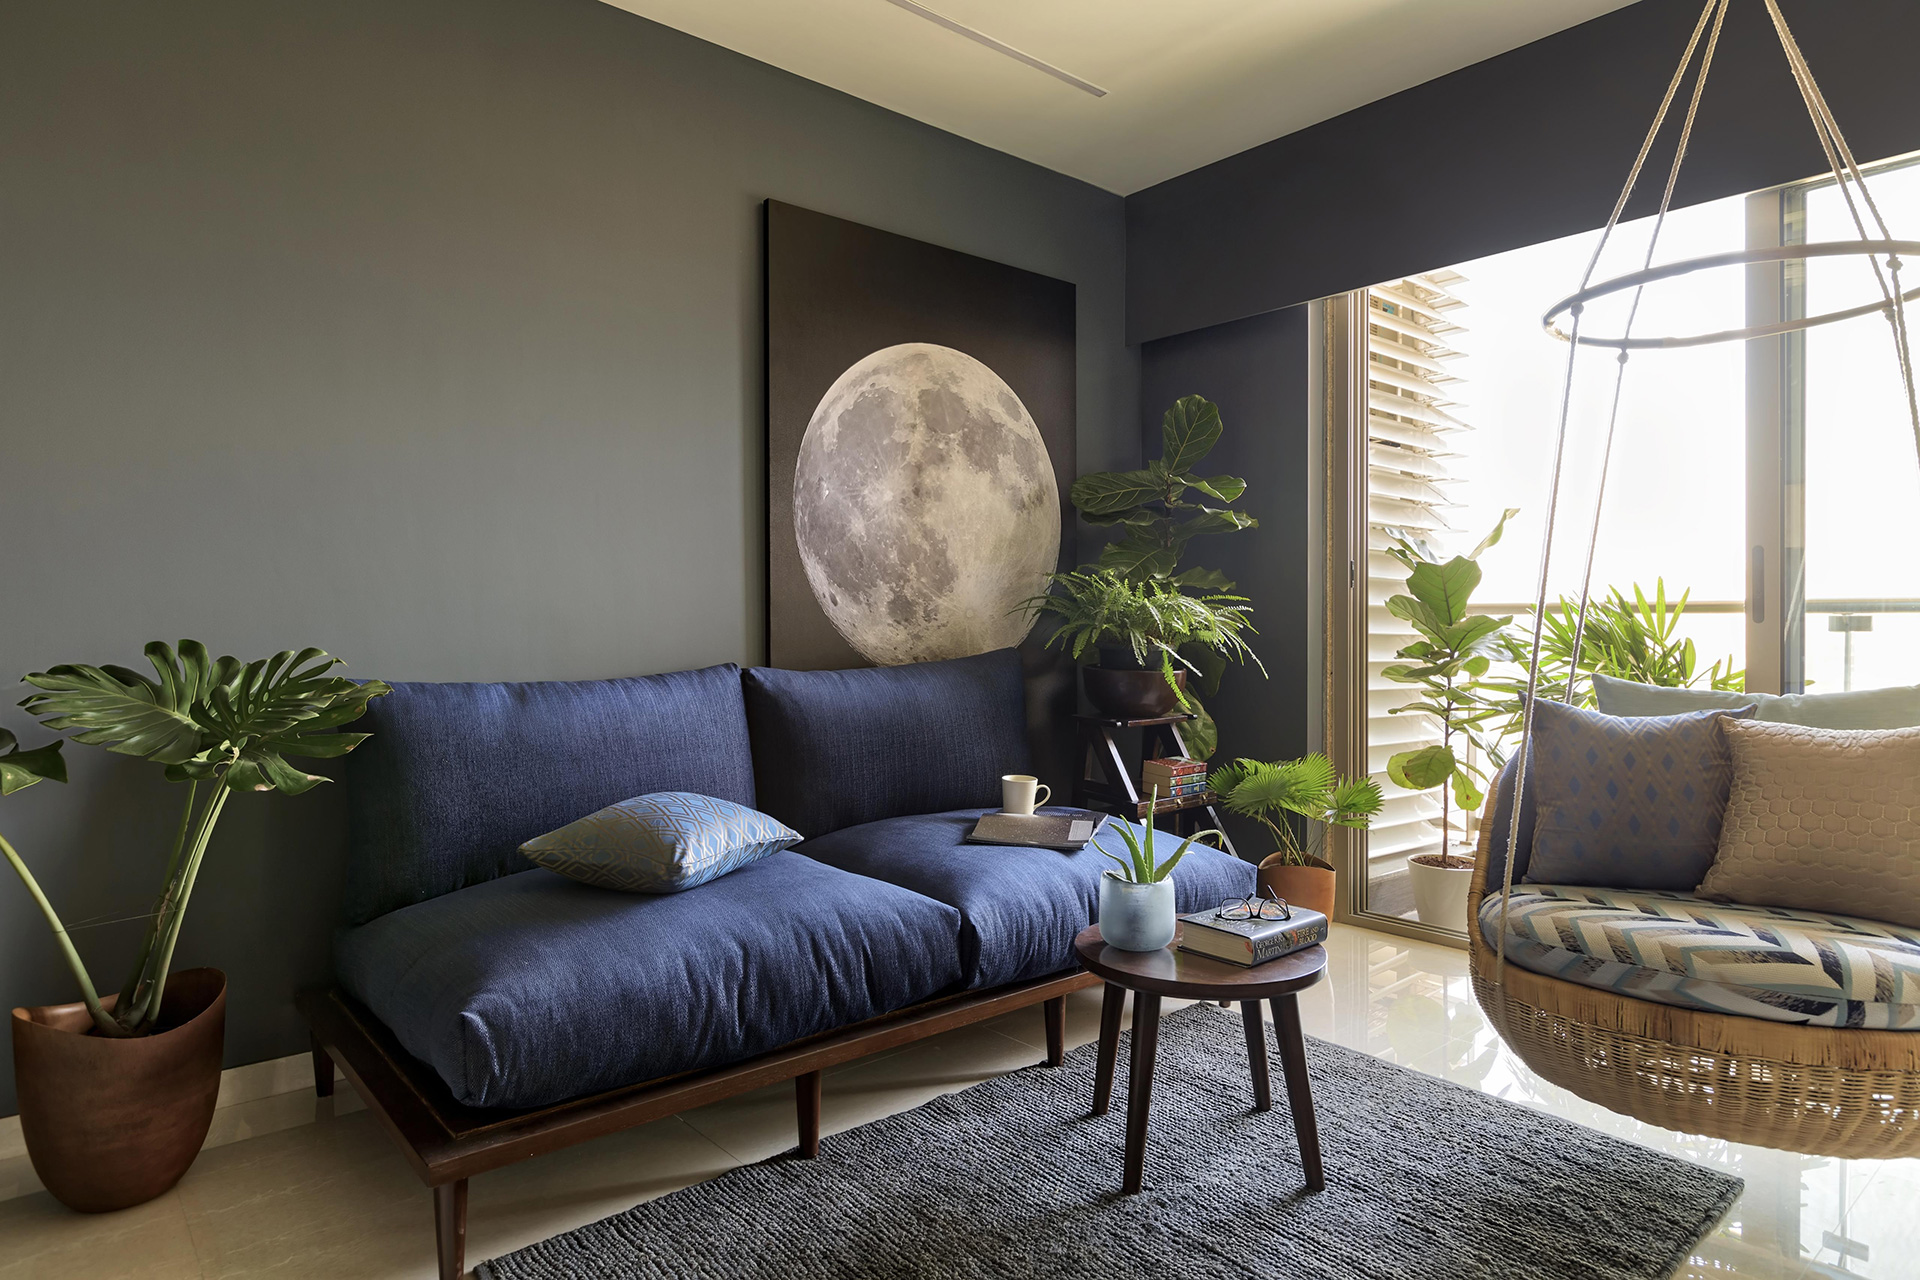 The moon canvas serves as the backdrop to the living area and is the first thing you see as you enter this city 3-BHK flat | Anu Chauhan, Prashant Chauhan| Zero9| STIR